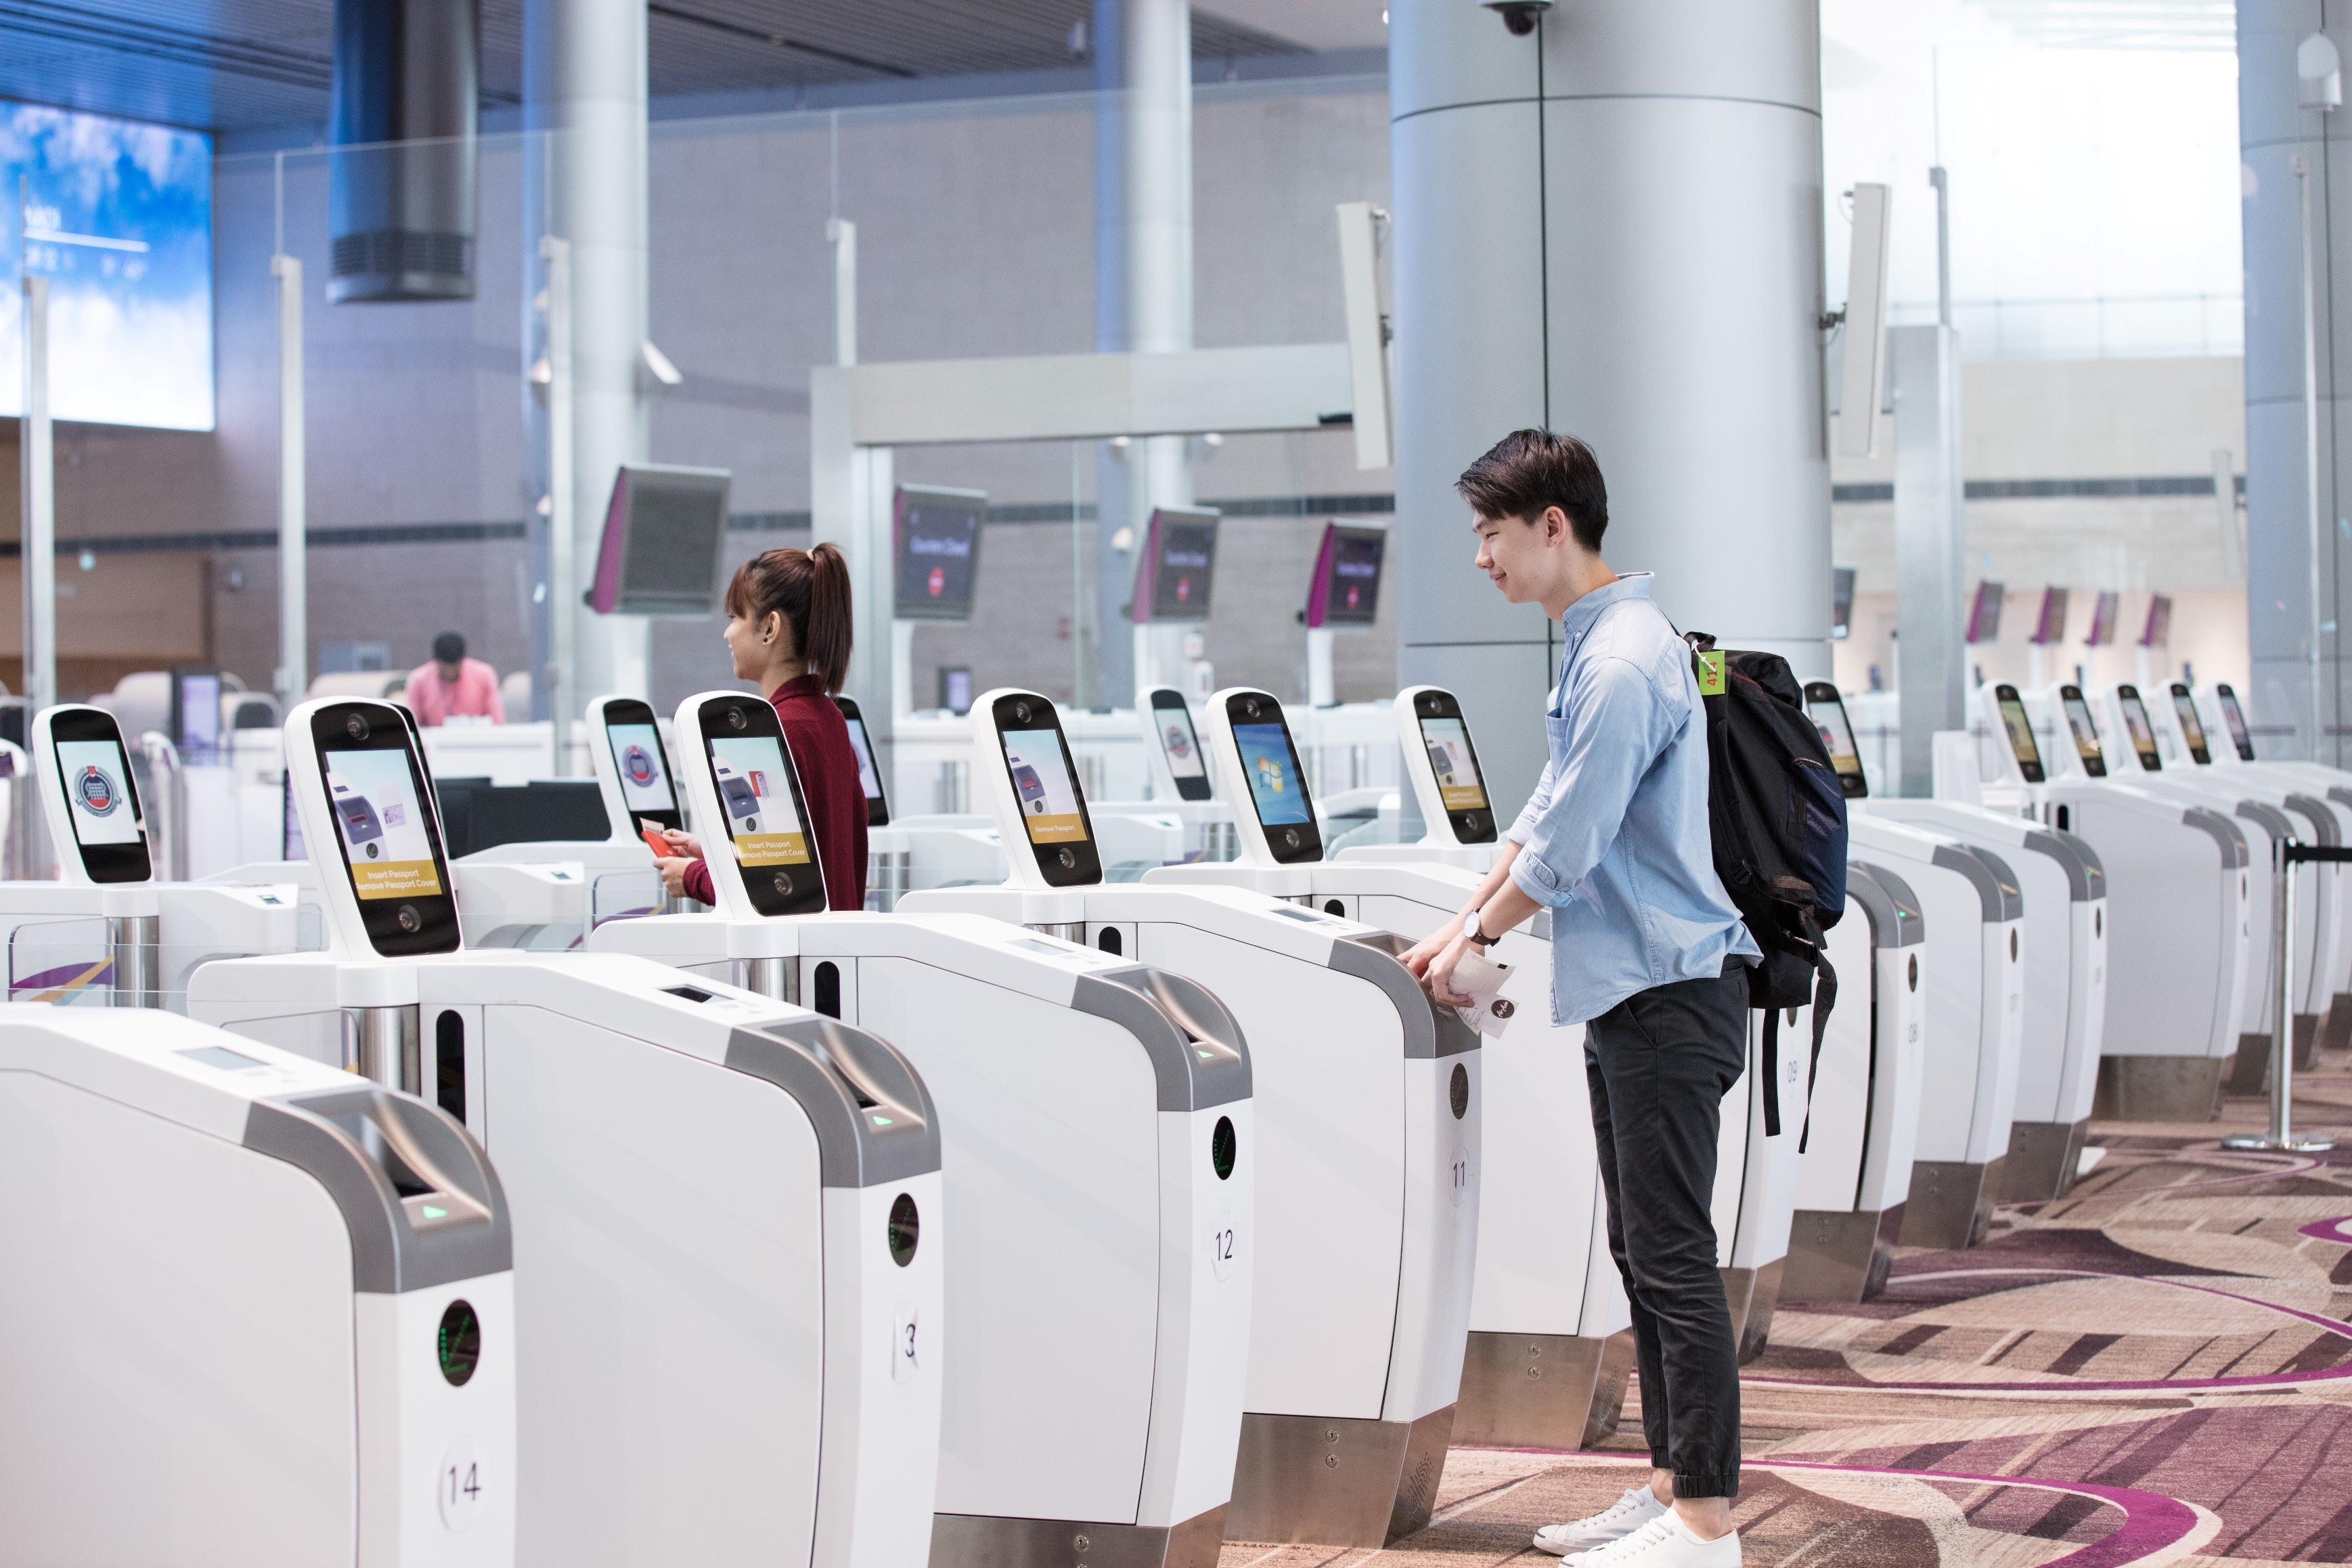 These are the world's best airports of 2018